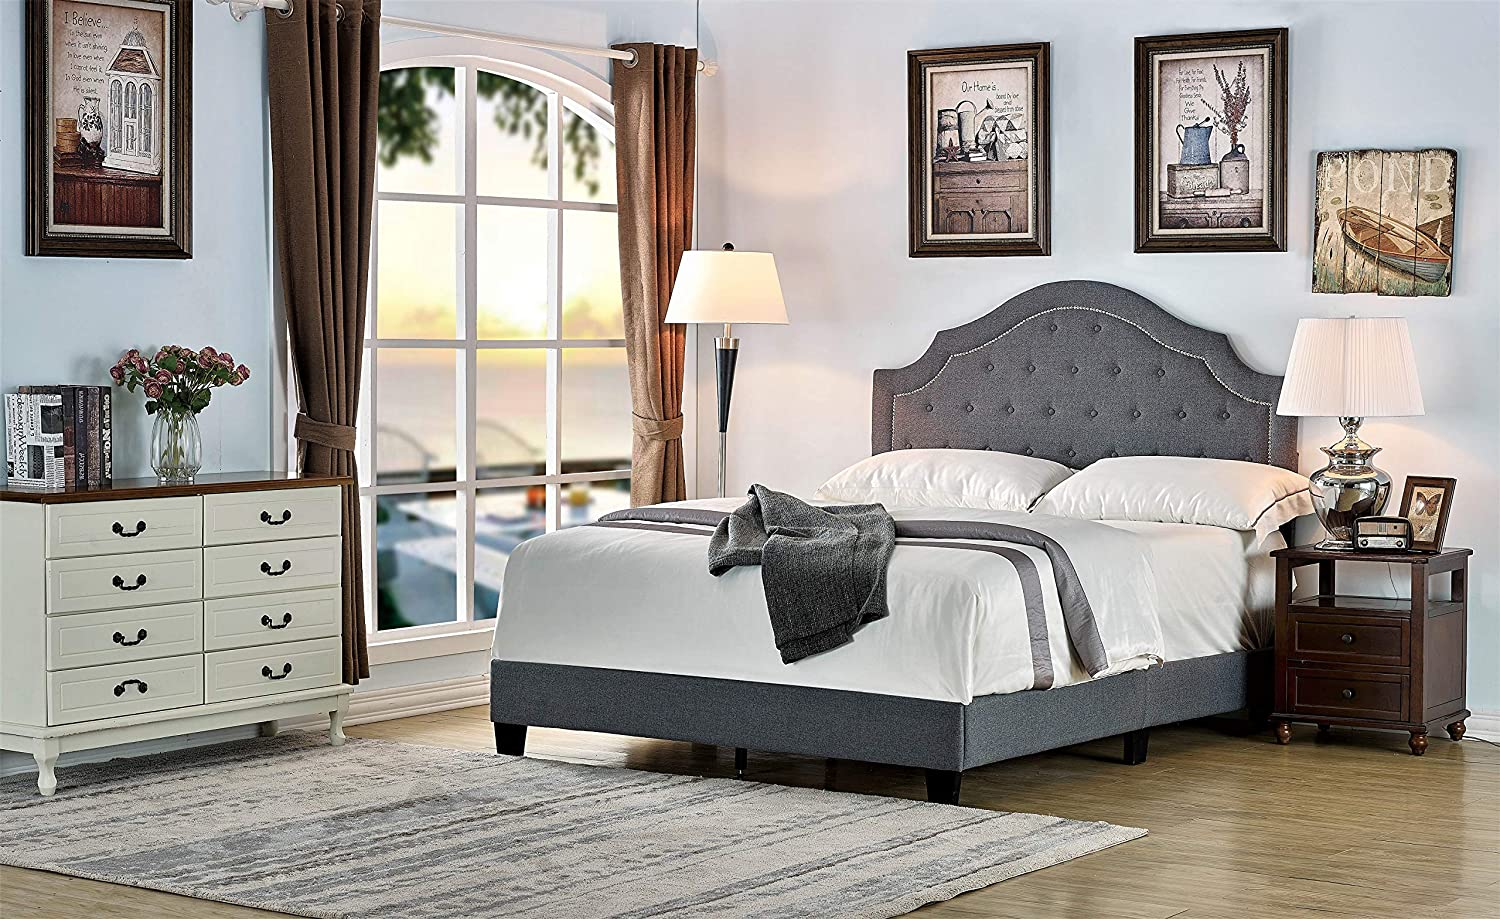 Container Furniture Direct Sklar Ultra Modern Button Tufted Upholstered Panel Bed, 82.70 , Queen, Grey